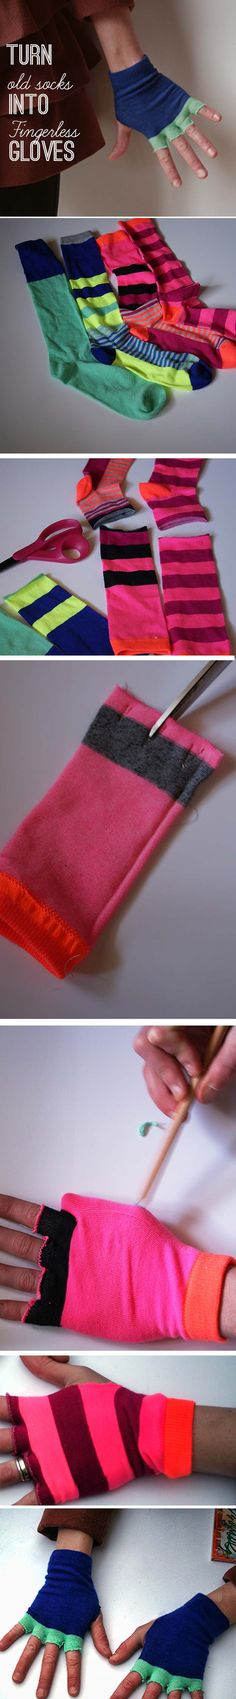 Cool Crafts Made With Old Socks - Old Socks to Fingerless Gloves - Fun DIY Projects and Gifts You Can Make With A Sock - Easy DIY Ideas for Teens, Teenagers, Kids and Adults - Step by Step Tutorials and Instructions for Making Room Decor, Animals, Cat, Rabbit, Owl, Puppets, Snowman, Gloves http://diyprojectsforteens.com/diy-crafts-ideas-socks